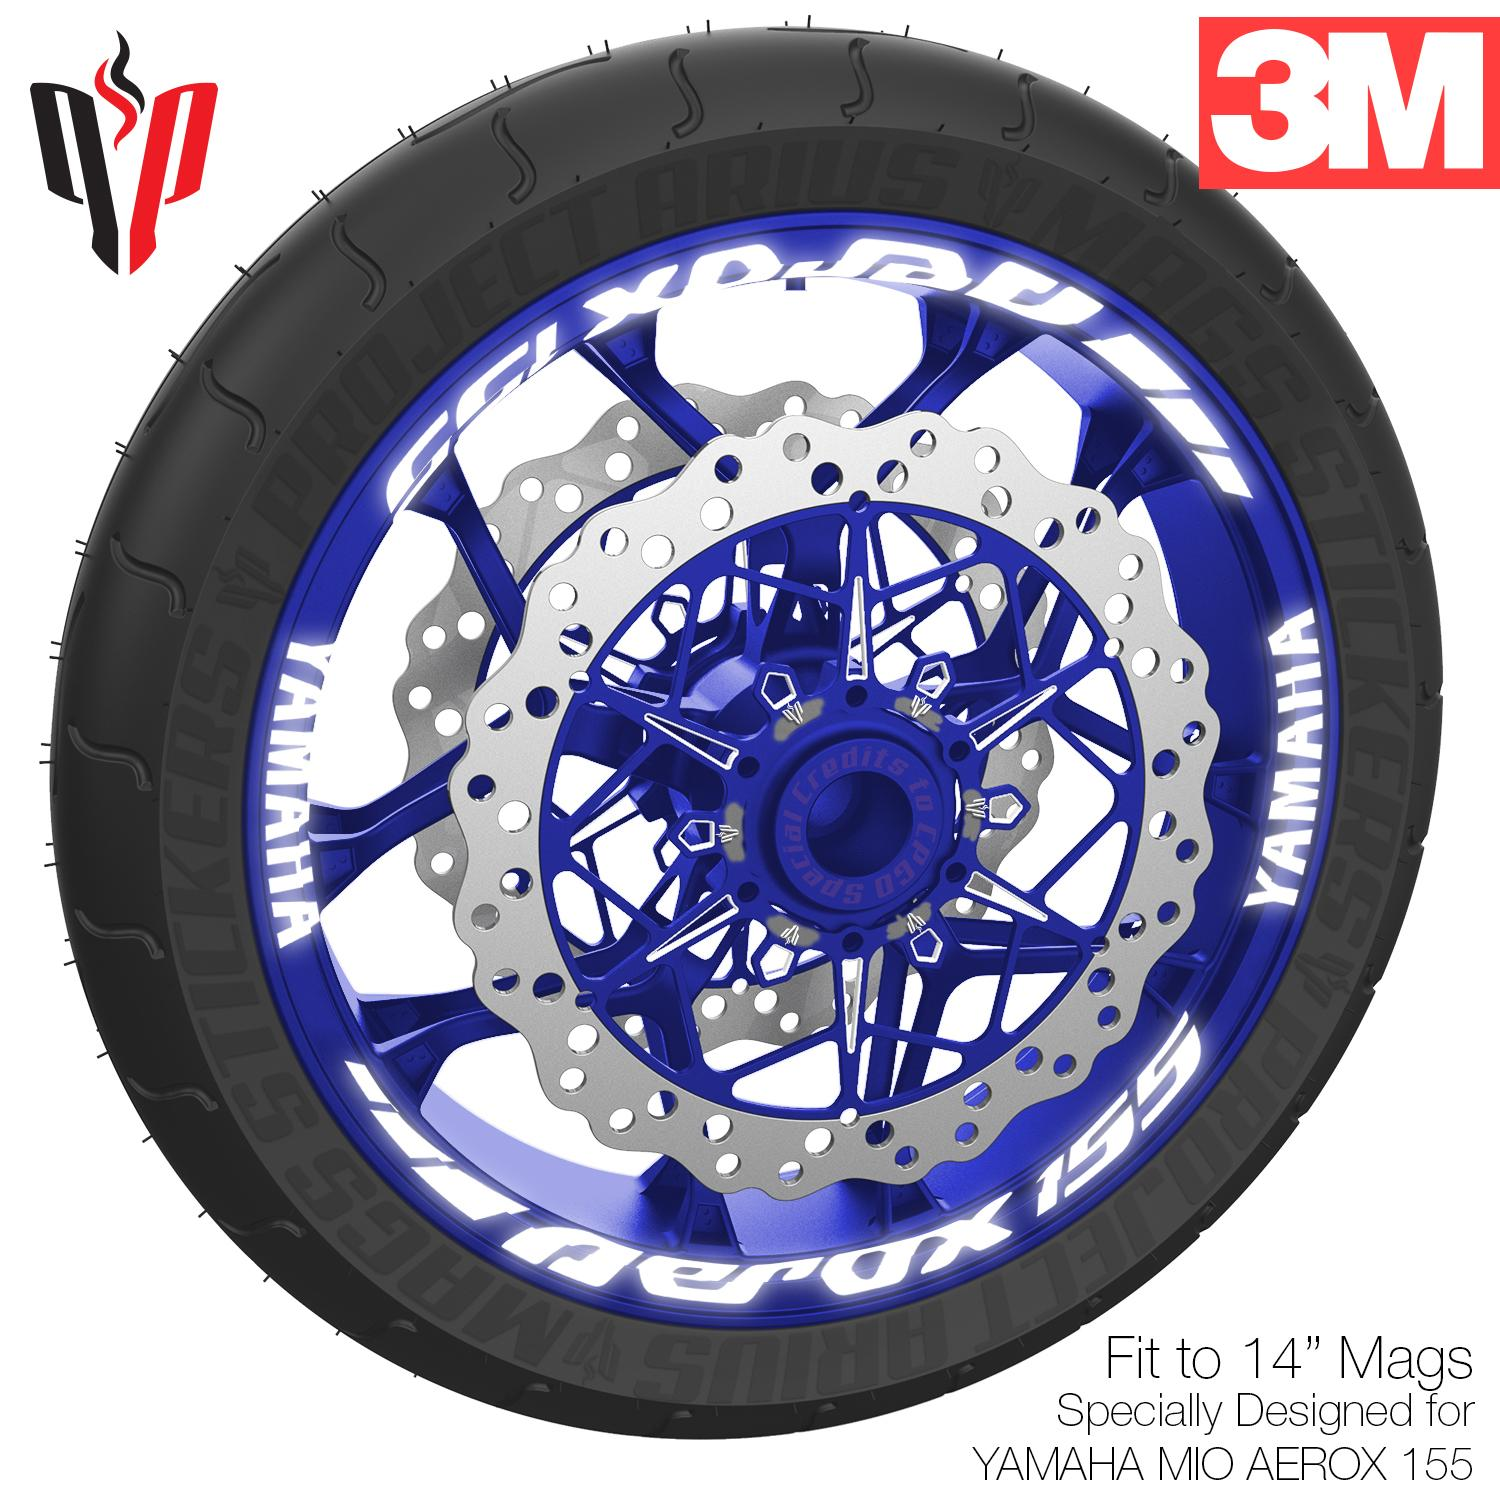 Pa highly reflective mags sticker for yamaha mio aerox 155 white